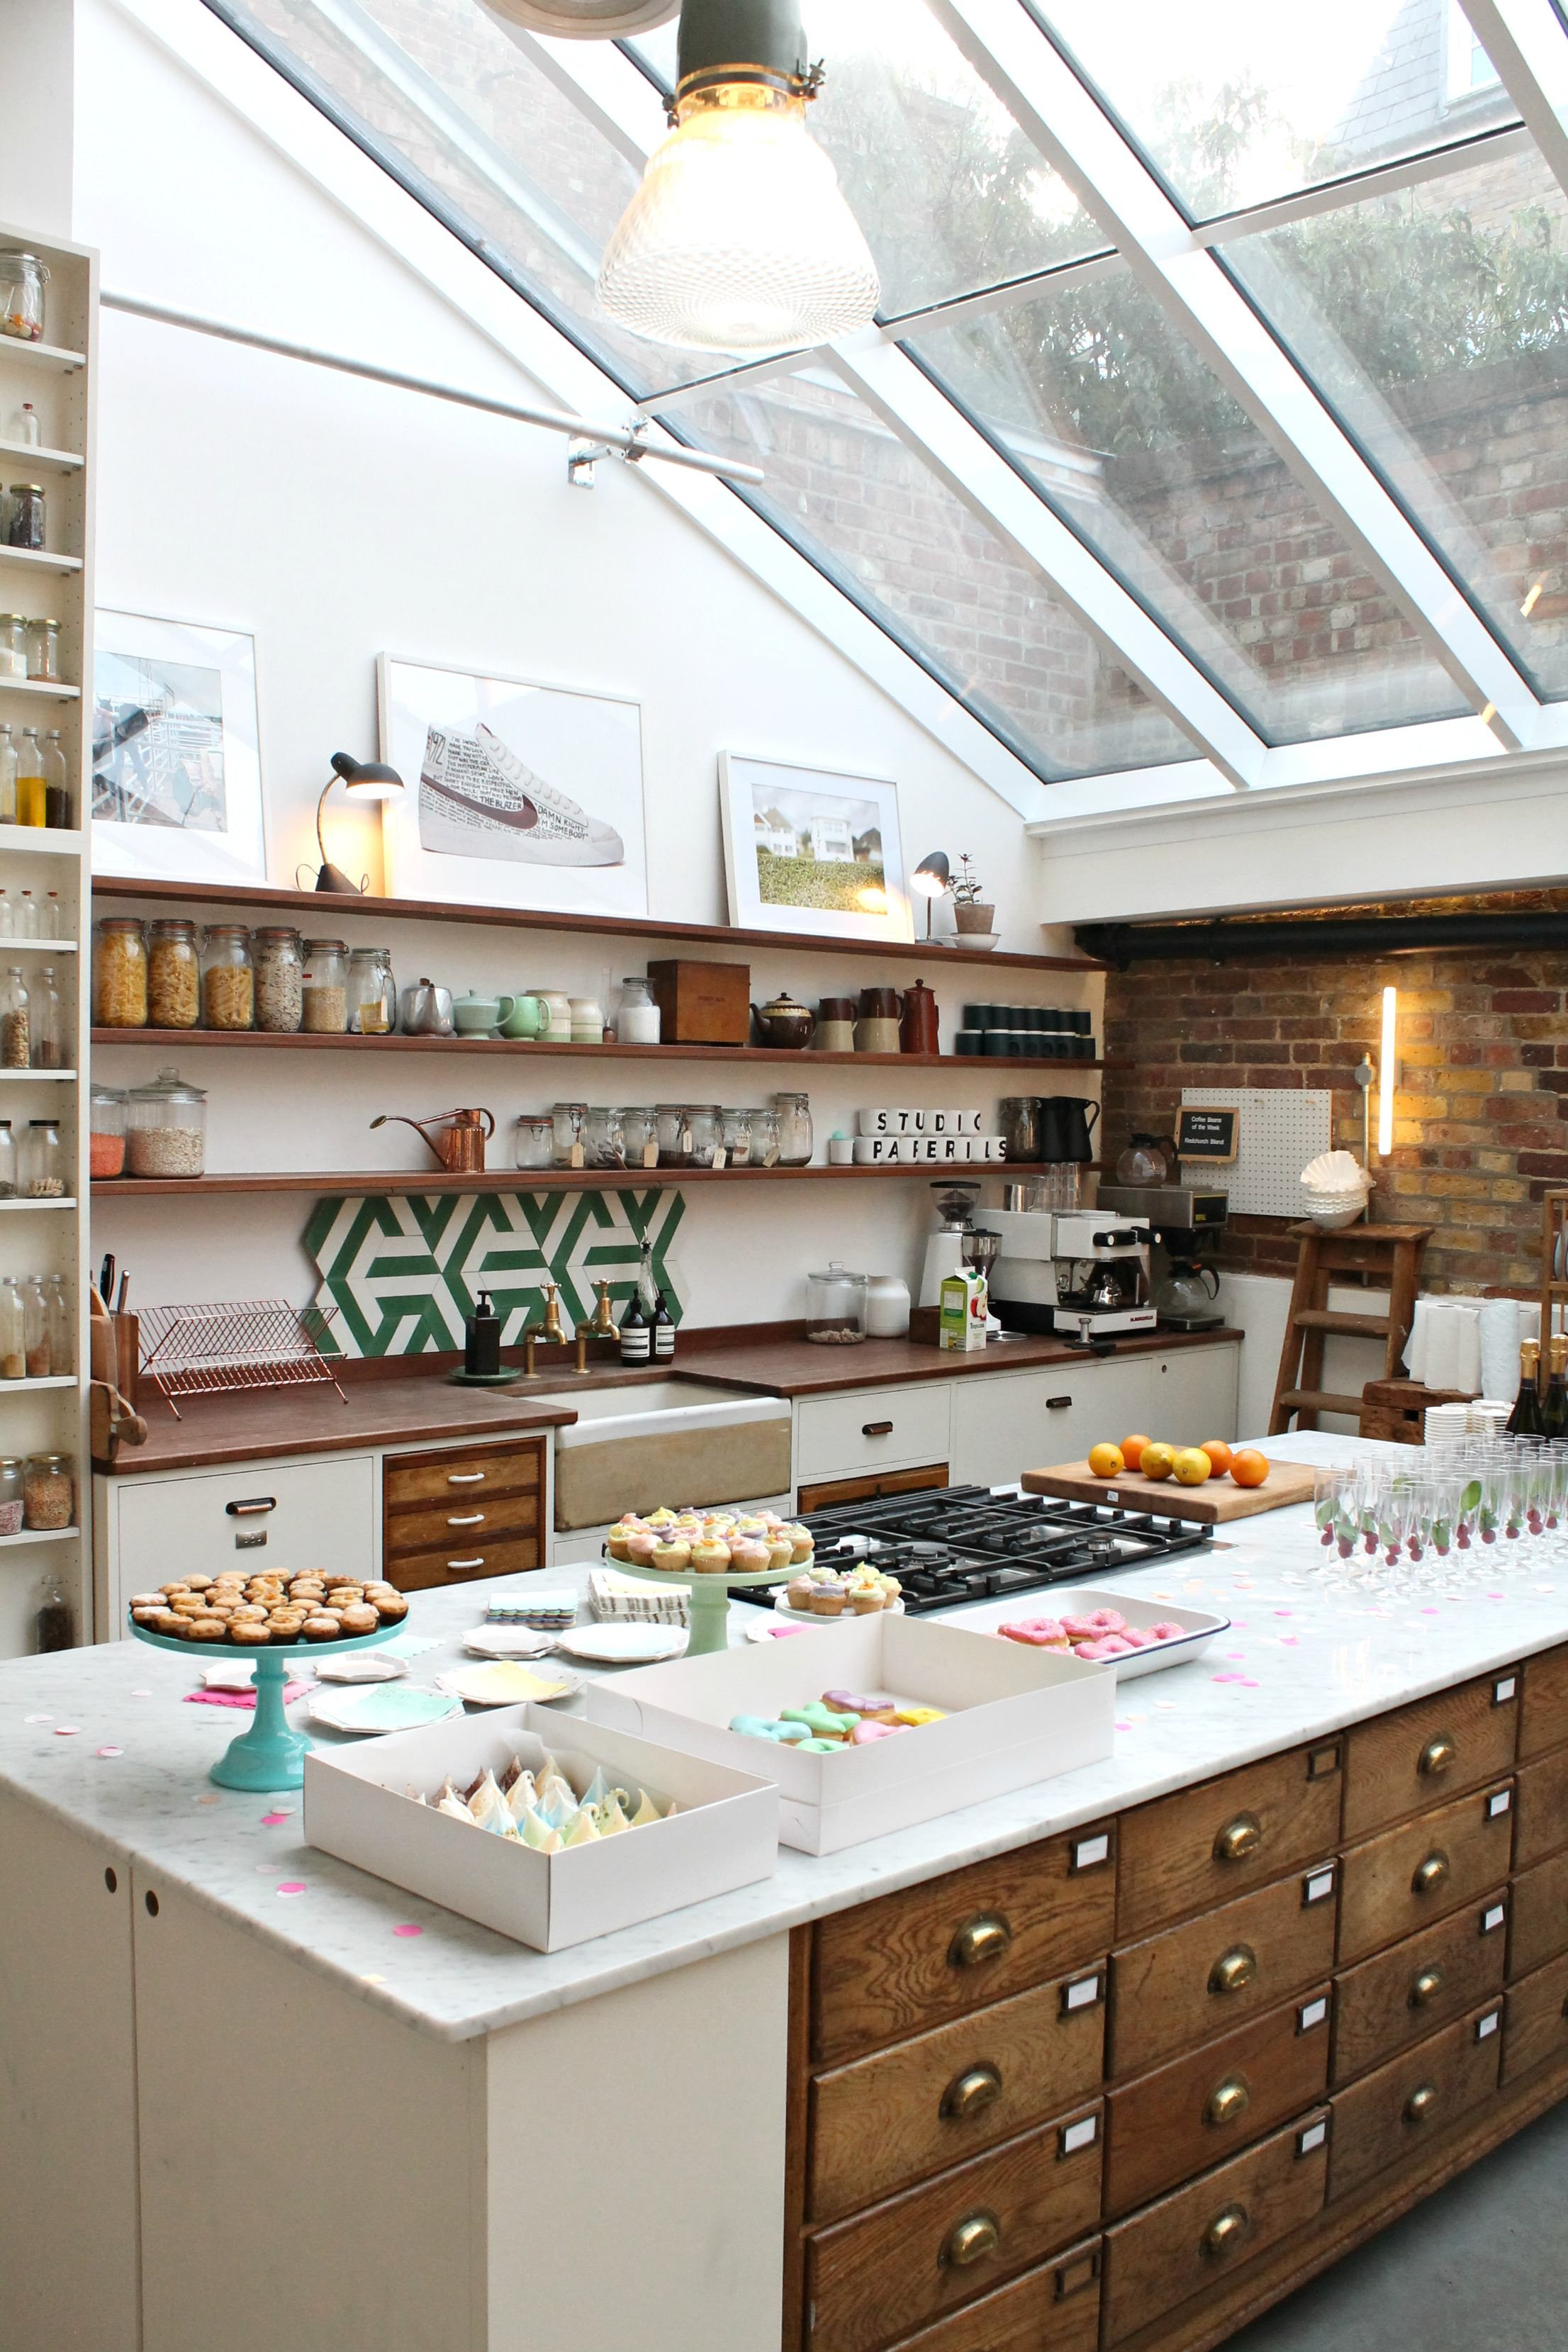 Retro Style Kitchen Vintage Style Kitchen Where Jamie Oliver Cooks At